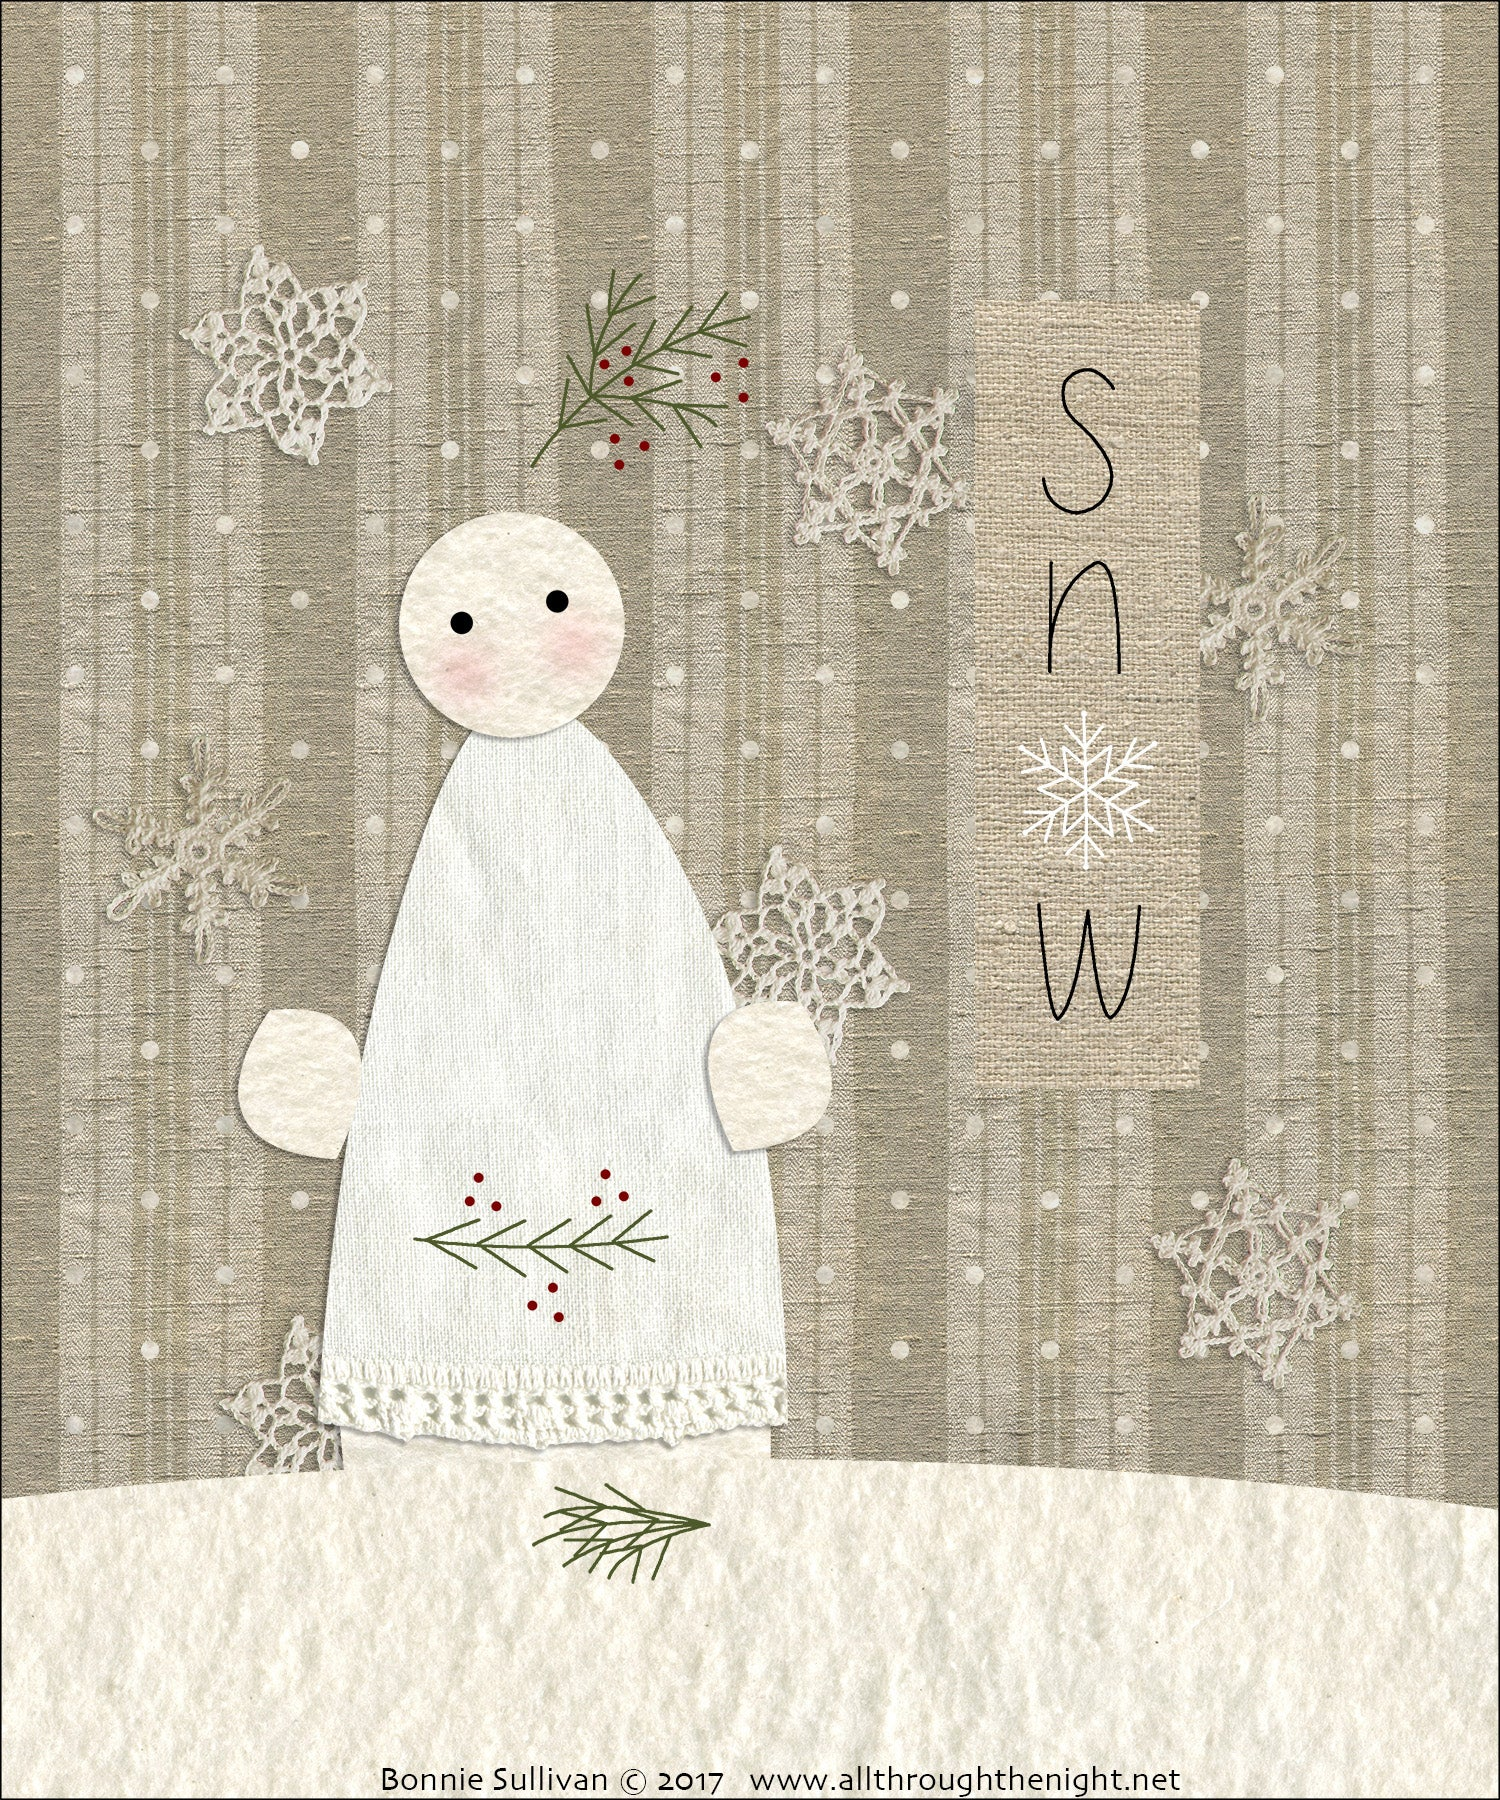 F1721 - Snow (January) Preprinted Fabric